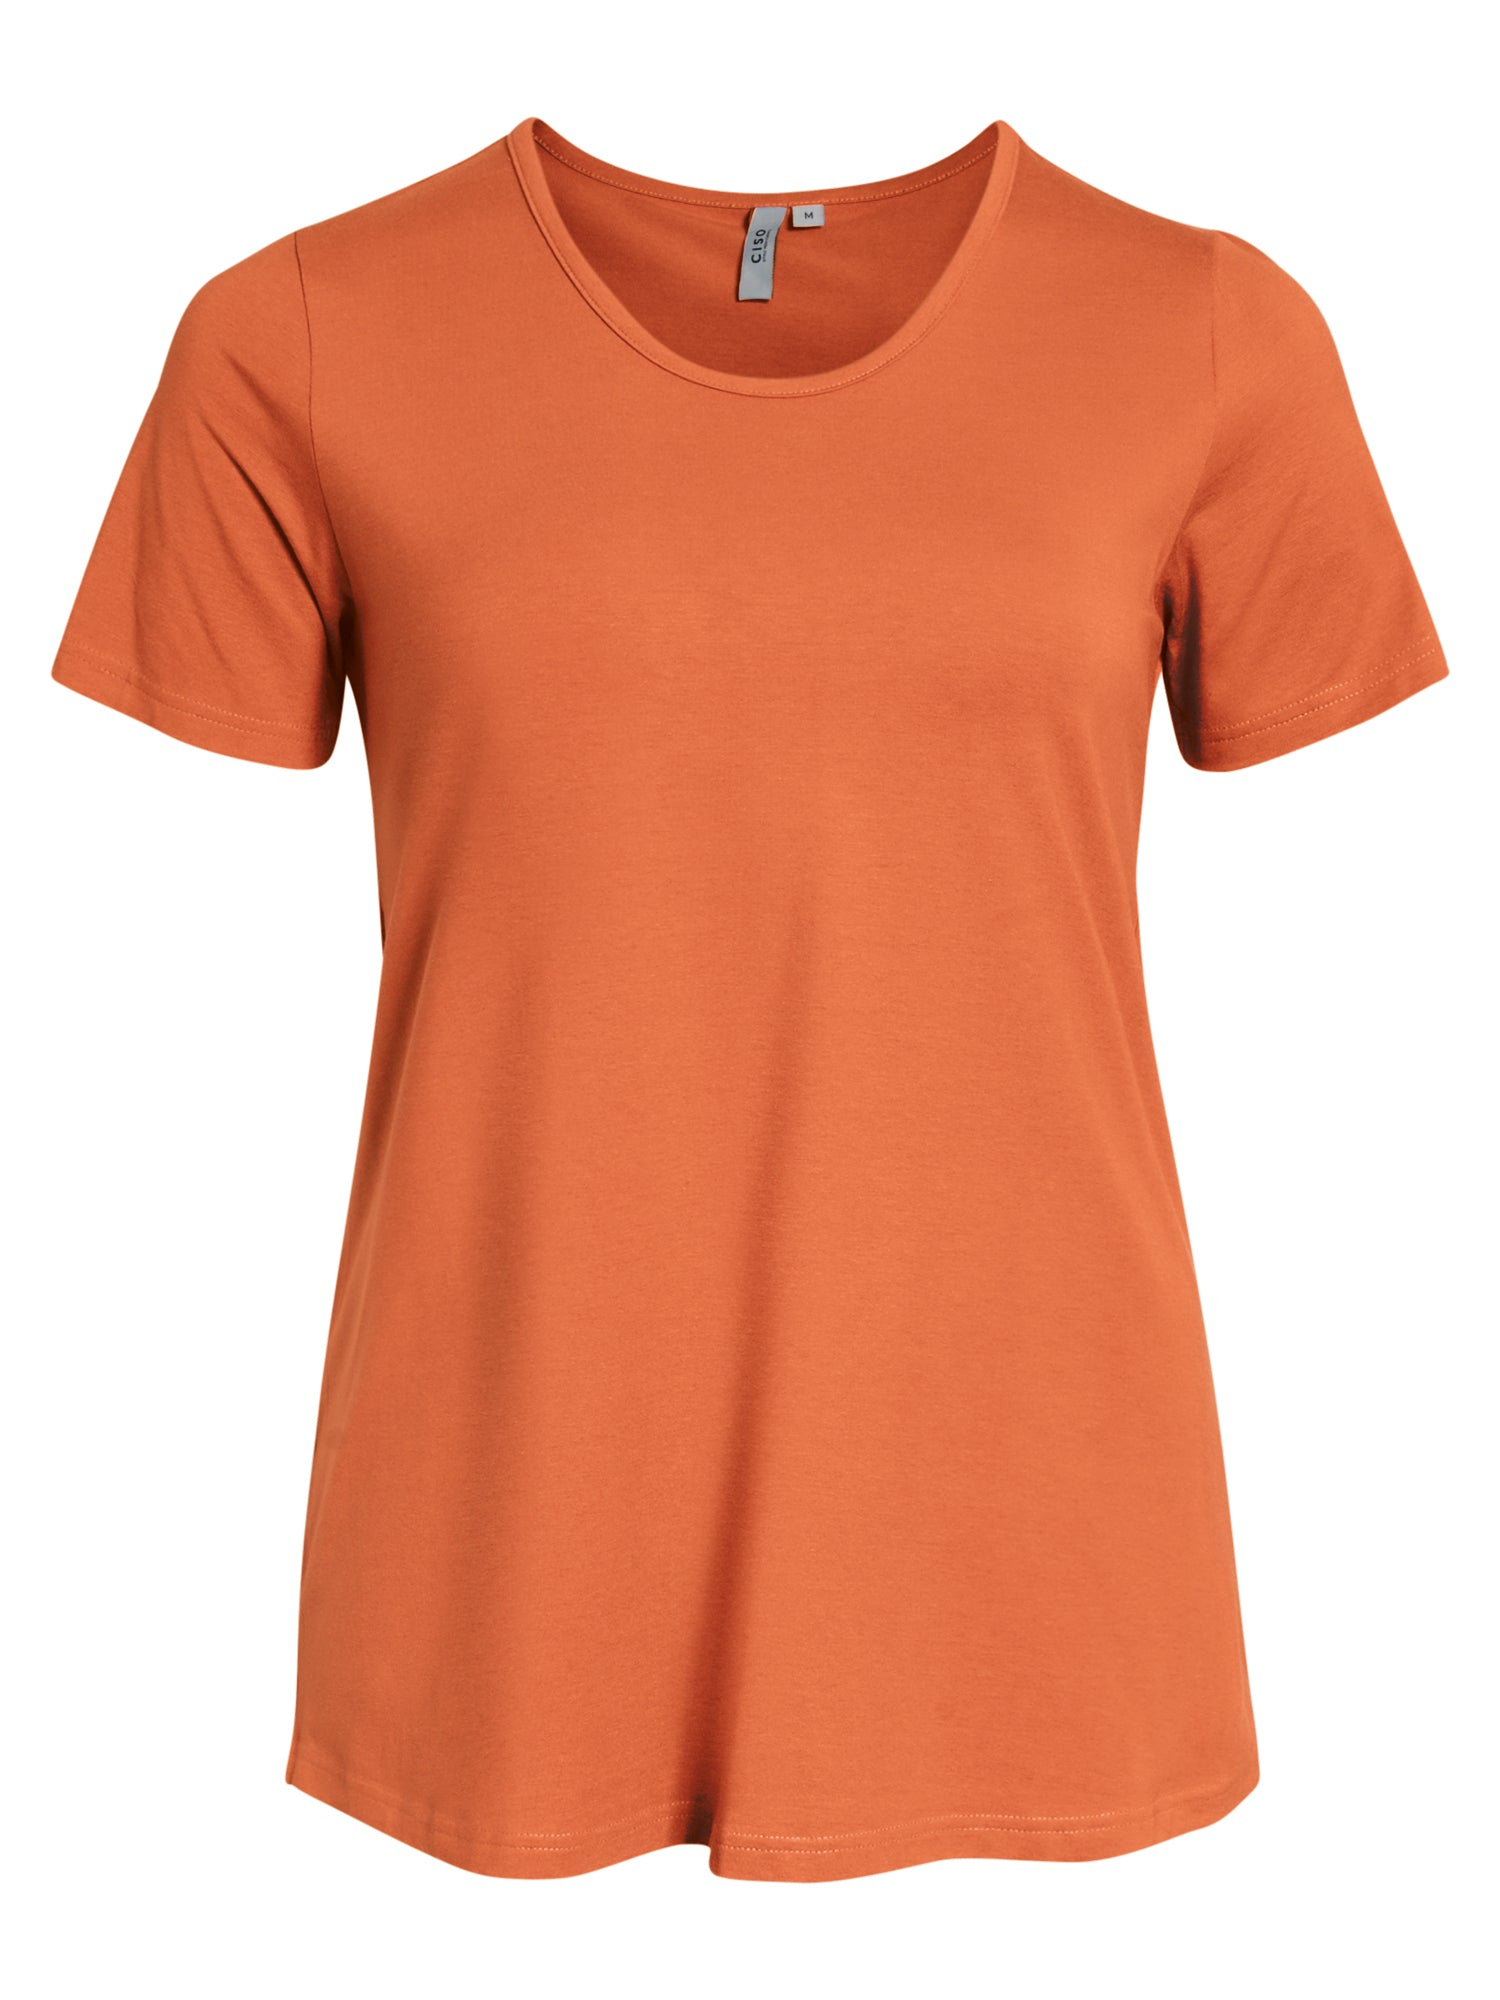 Image of   Basis T-shirt i A-facon med korte ærmer - Jaffa orange